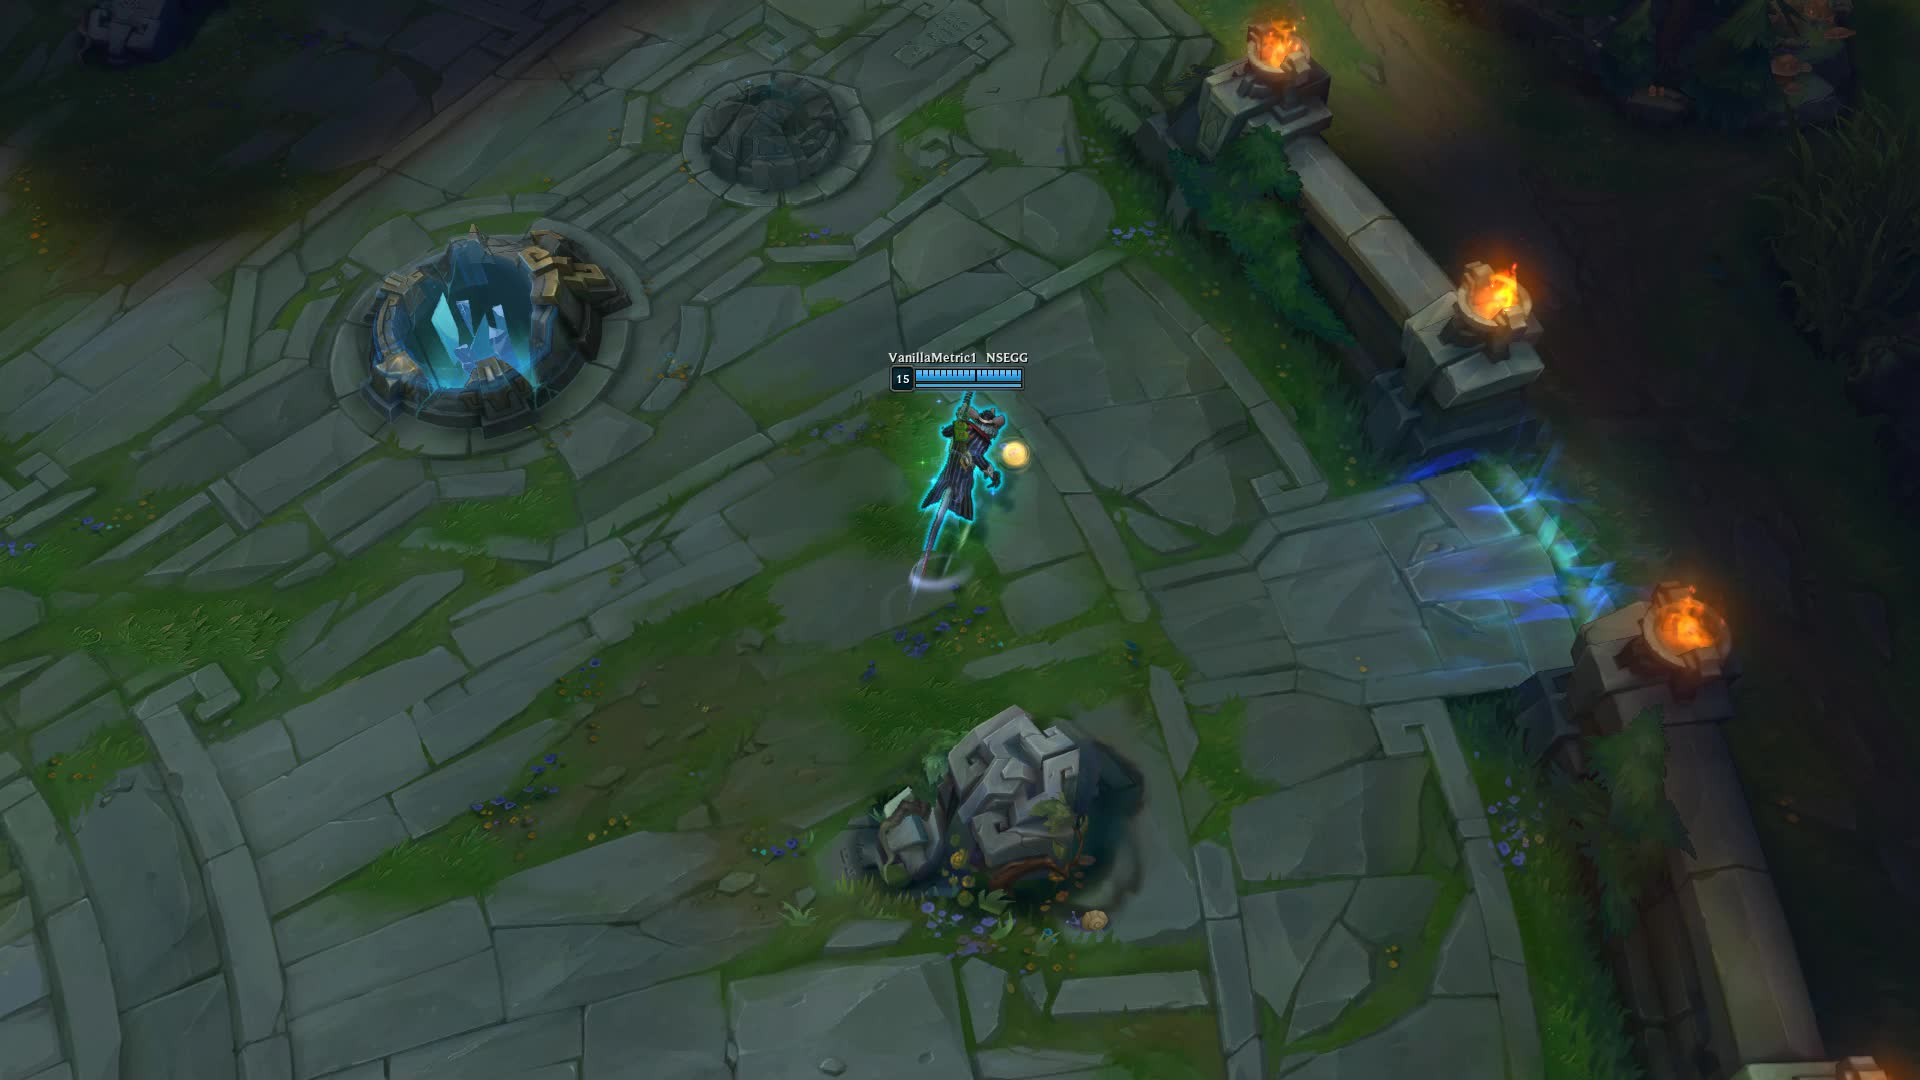 Gaming, Gif Your Game, GifYourGame, League, League of Legends, LeagueOfLegends, LoL, VanillaMetric1, ⏱️ VanillaMetric1 Clip 1 GIFs